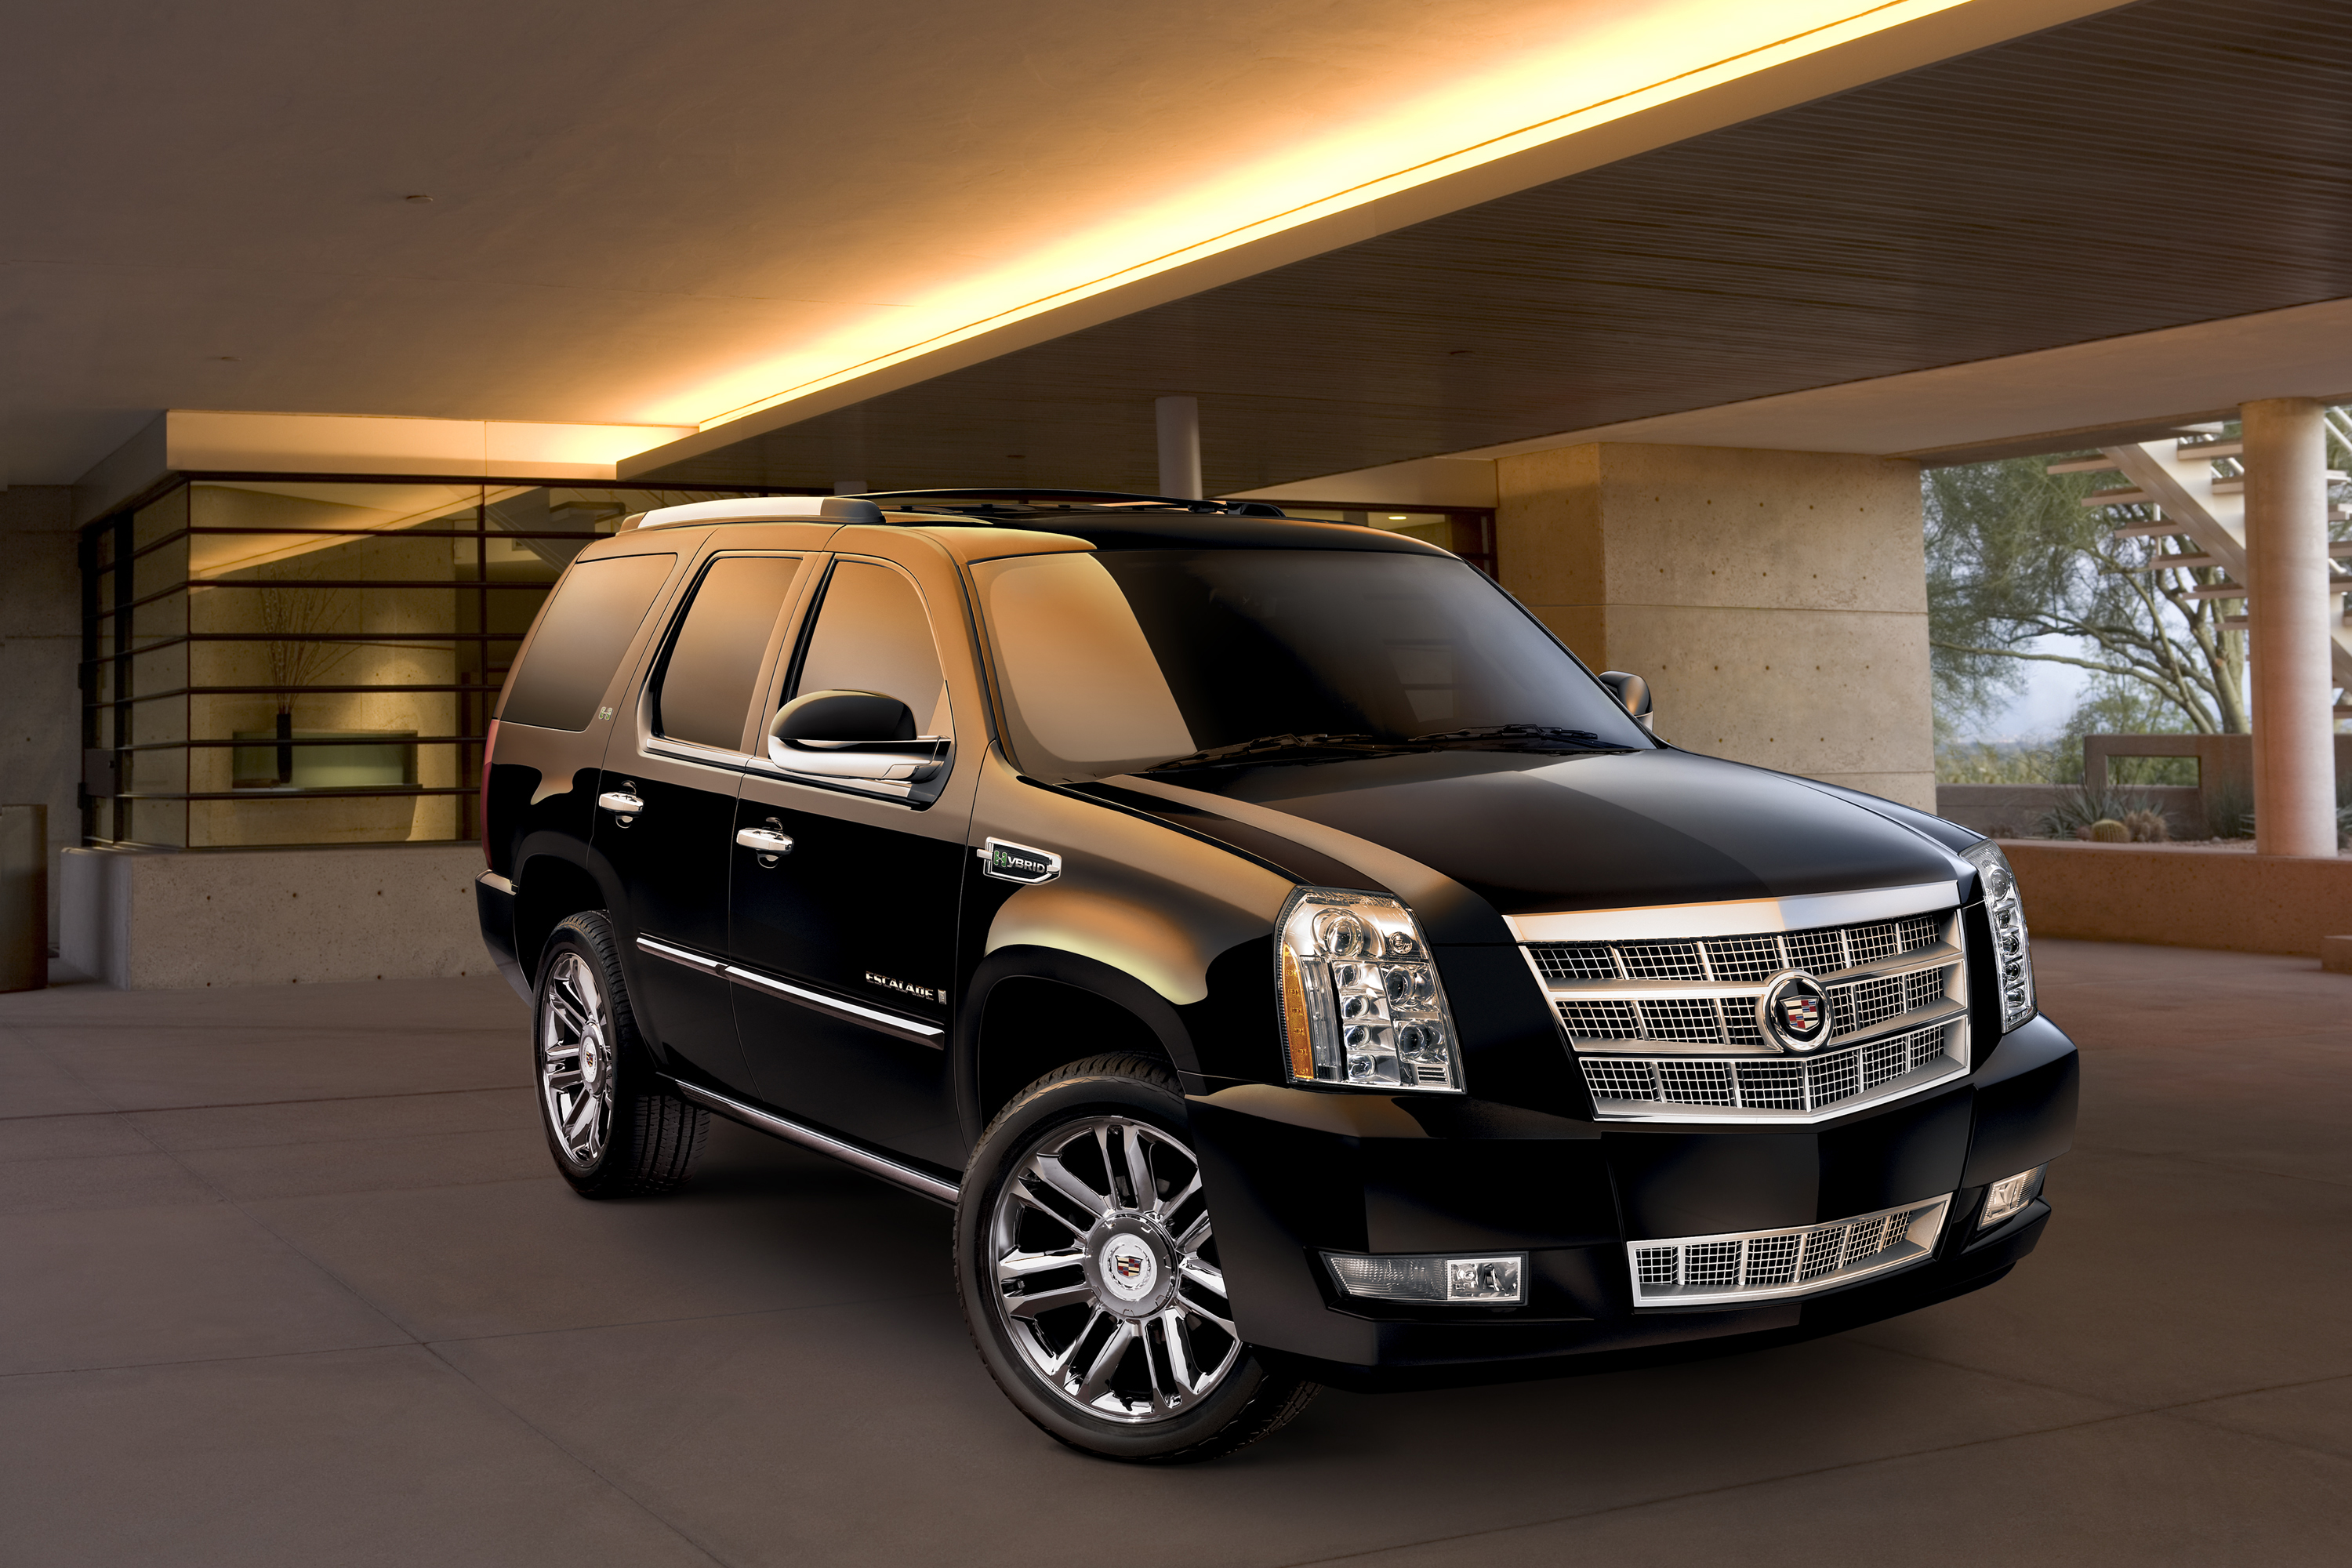 2010 Cadillac Escalade Esv Information And Photos Zombiedrive